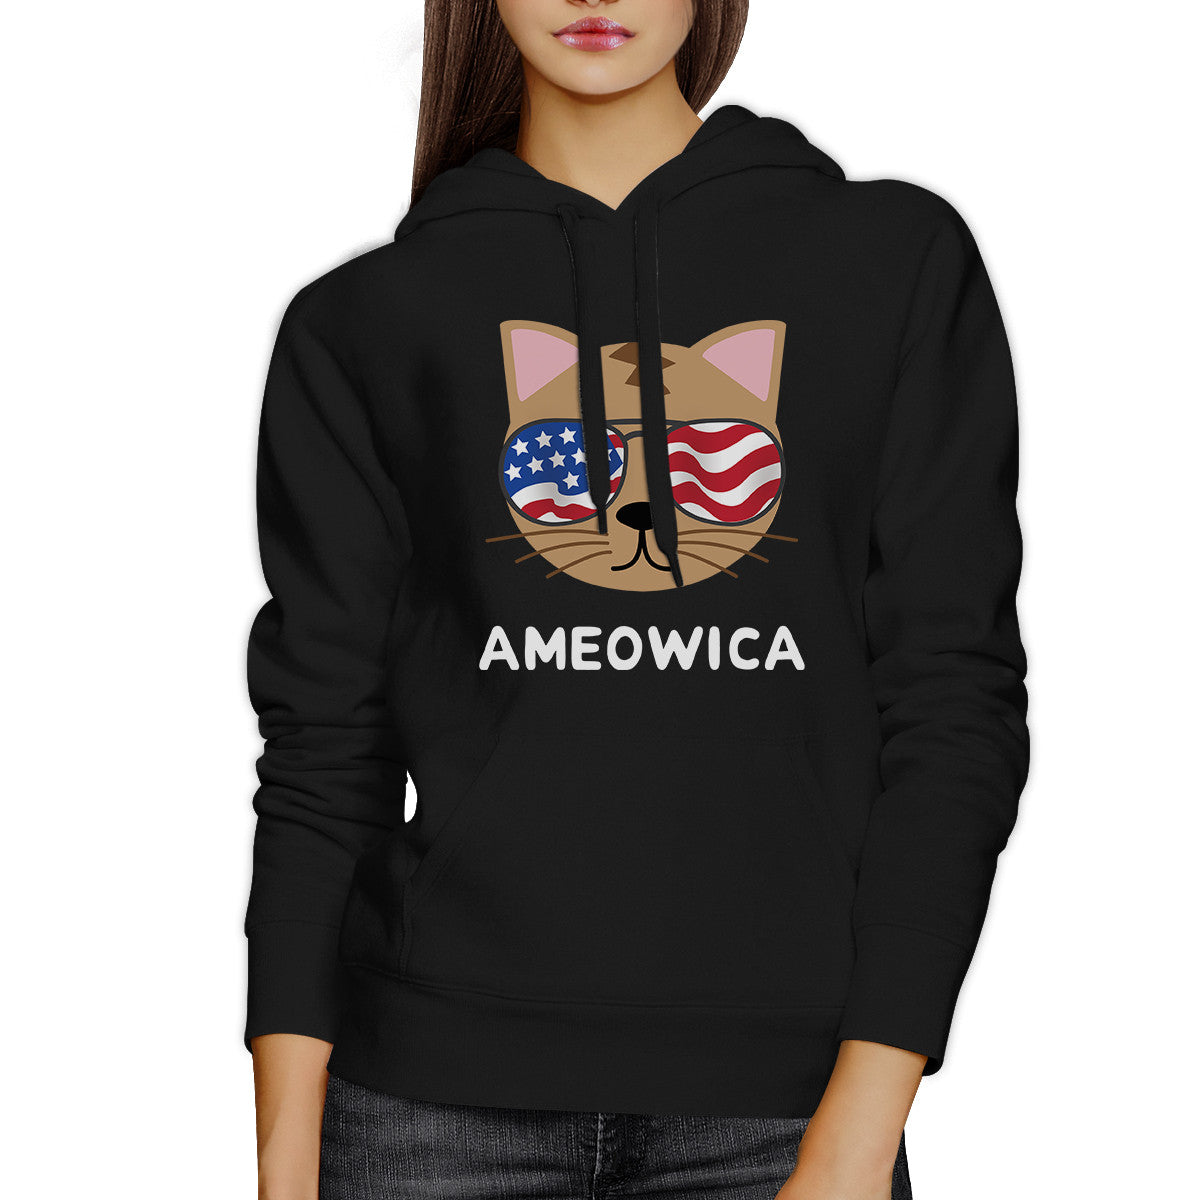 ameowica unisex black funny design hoodie gift ideas - Hoodie Design Ideas